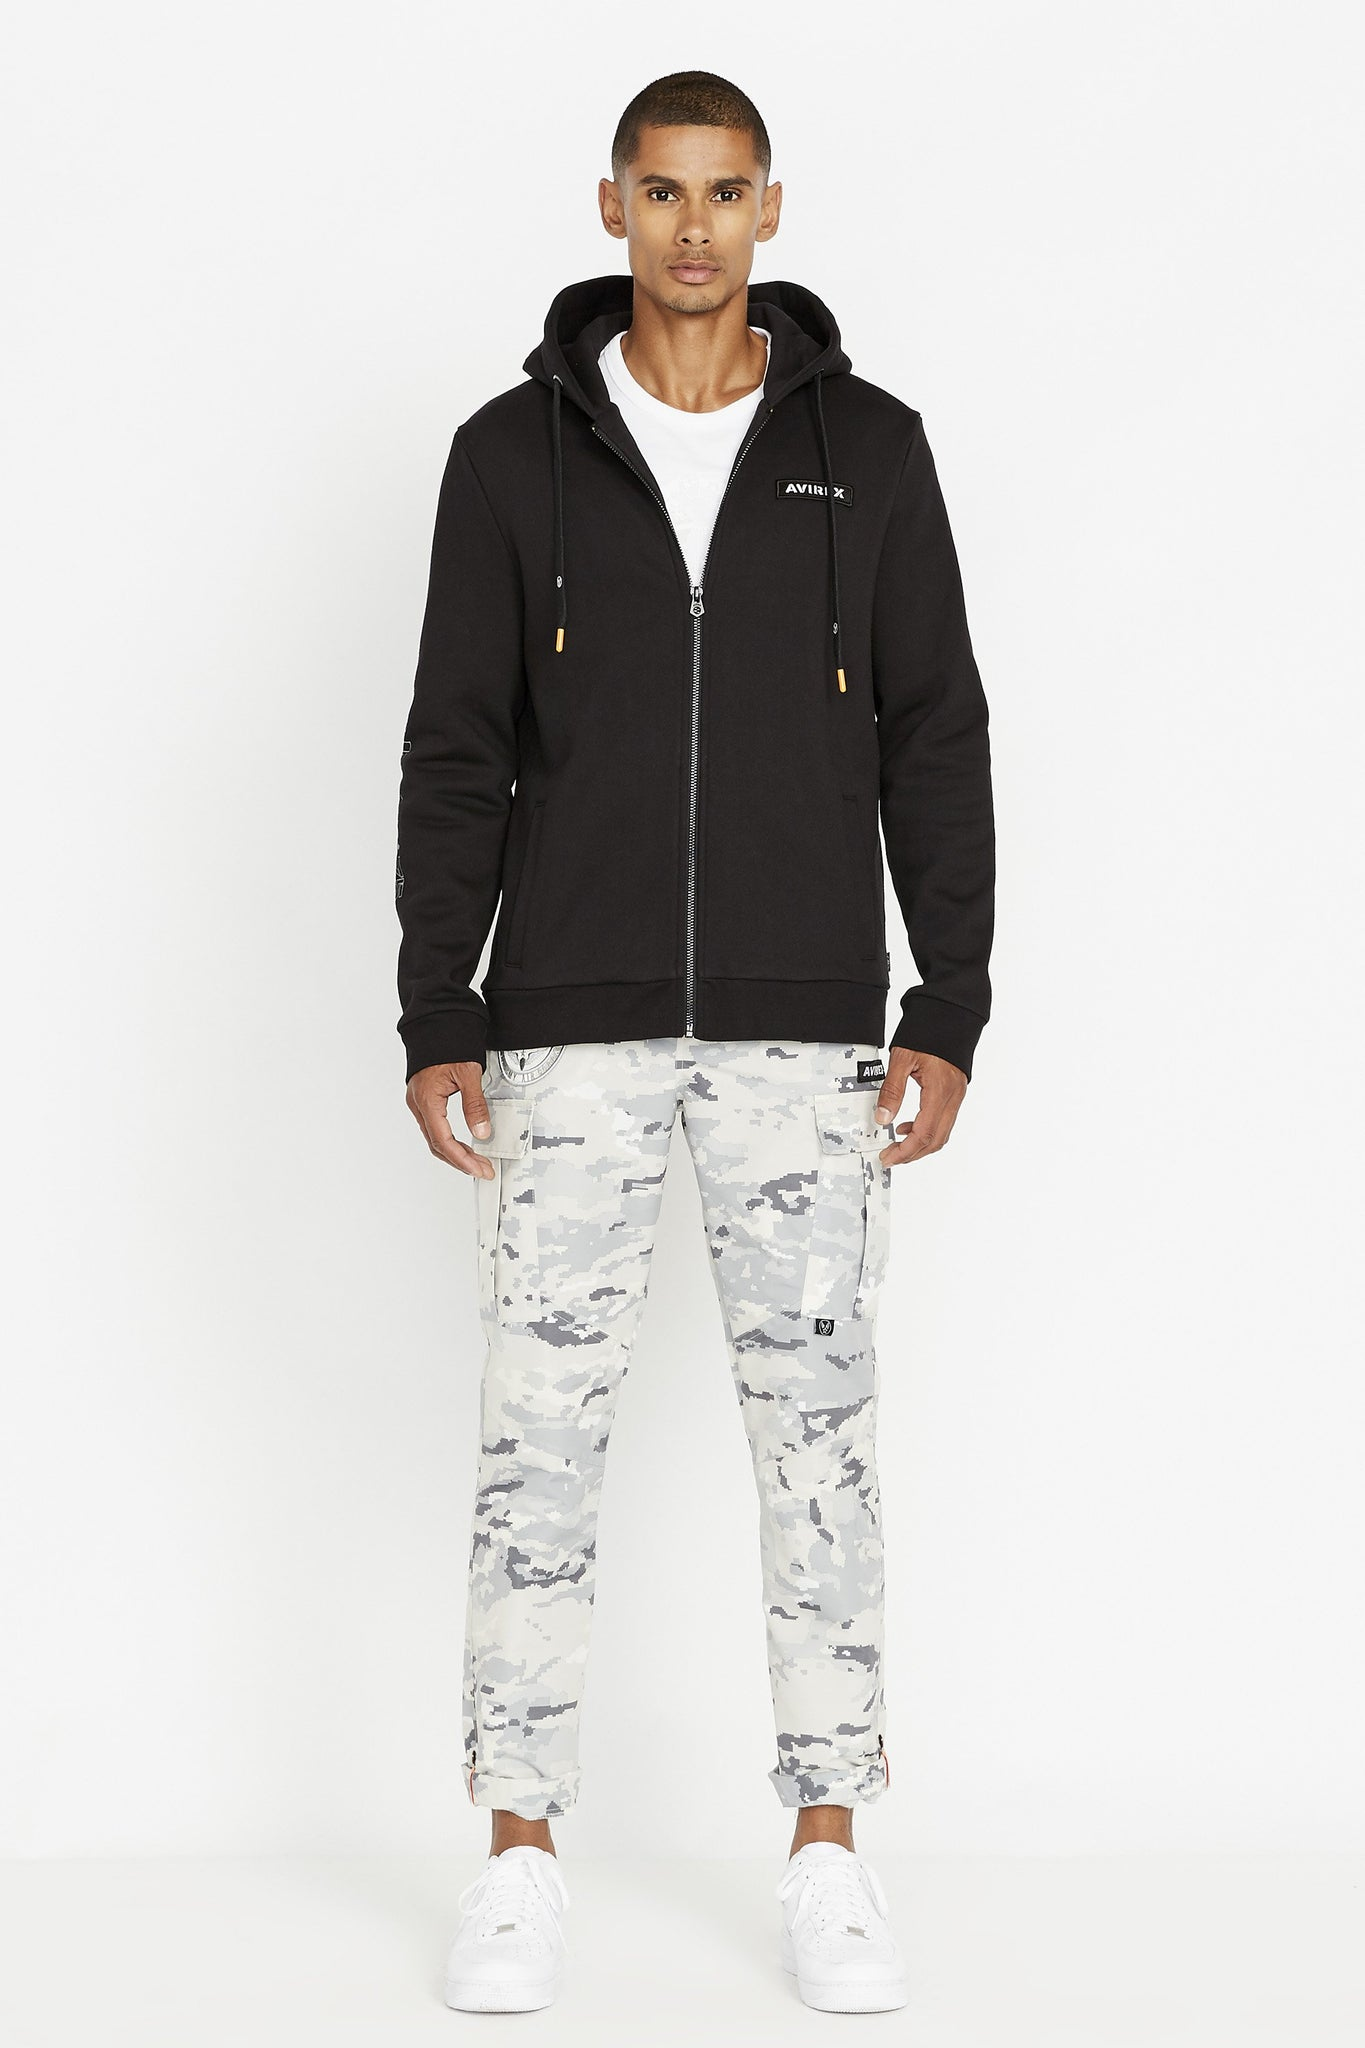 Full view of men wearing a black long sleeve front zip hoodie sweatshirt with Avirex chest patch and light grey camo print pants